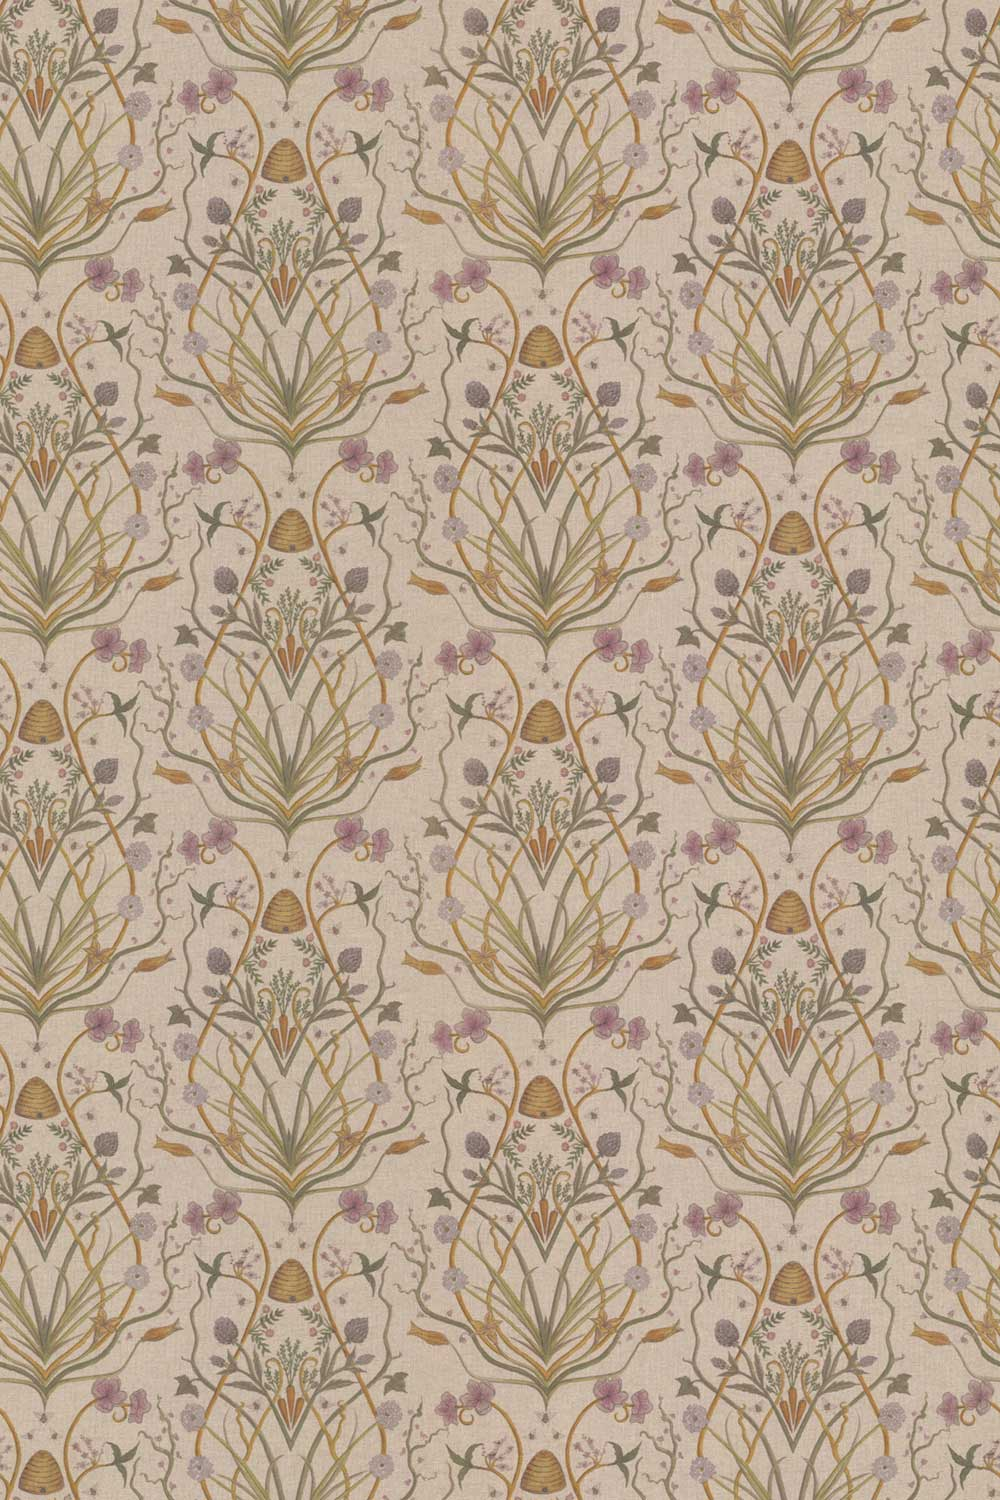 Potagerie Fabric - Linen - by The Chateau by Angel Strawbridge